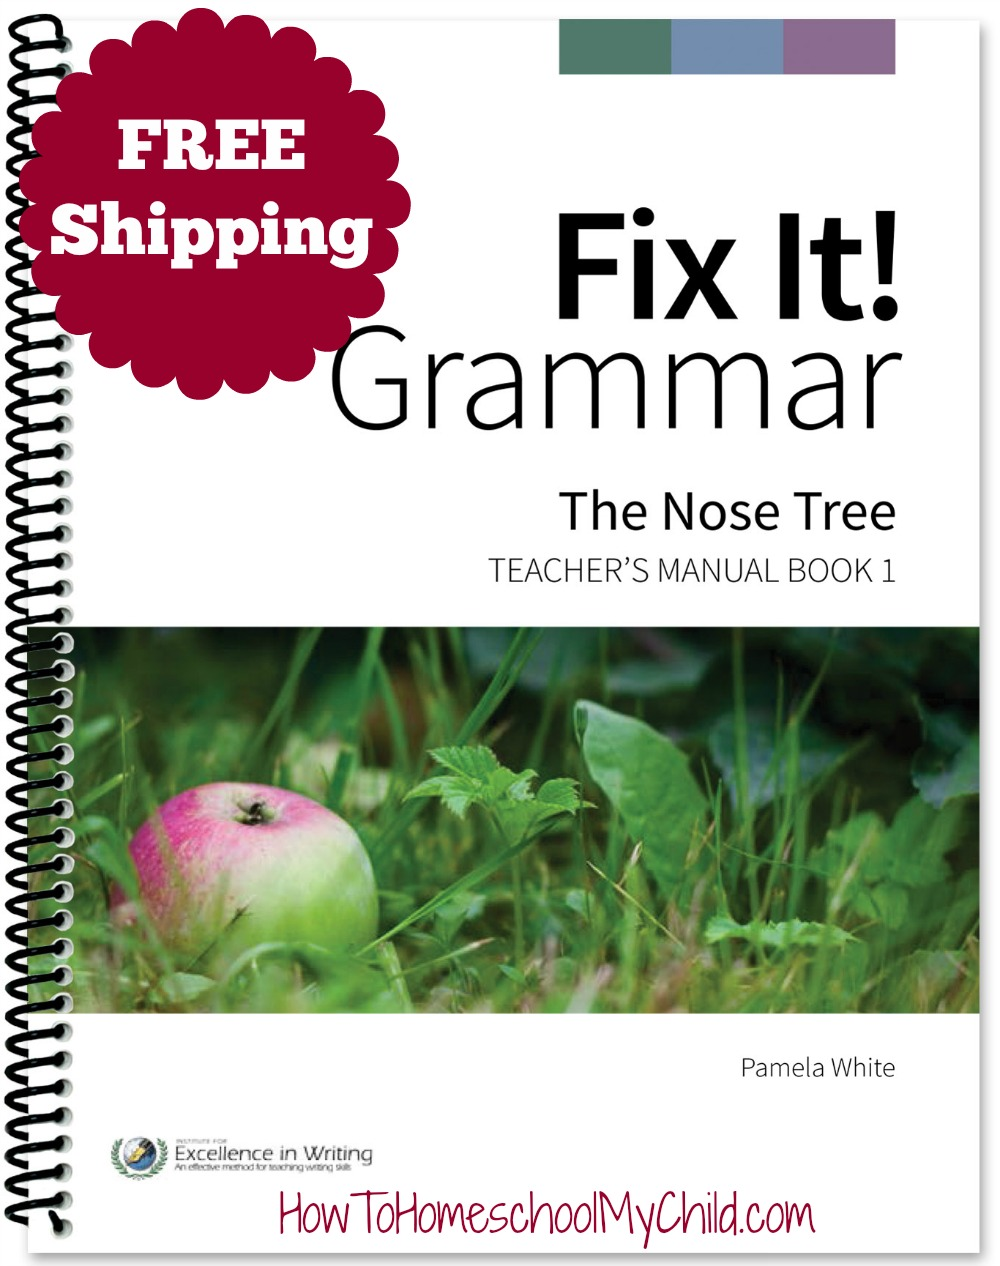 Fix It 1 - Nose Tree ~ learning English grammar the Best way from HowToHomeschoolMyChild.com